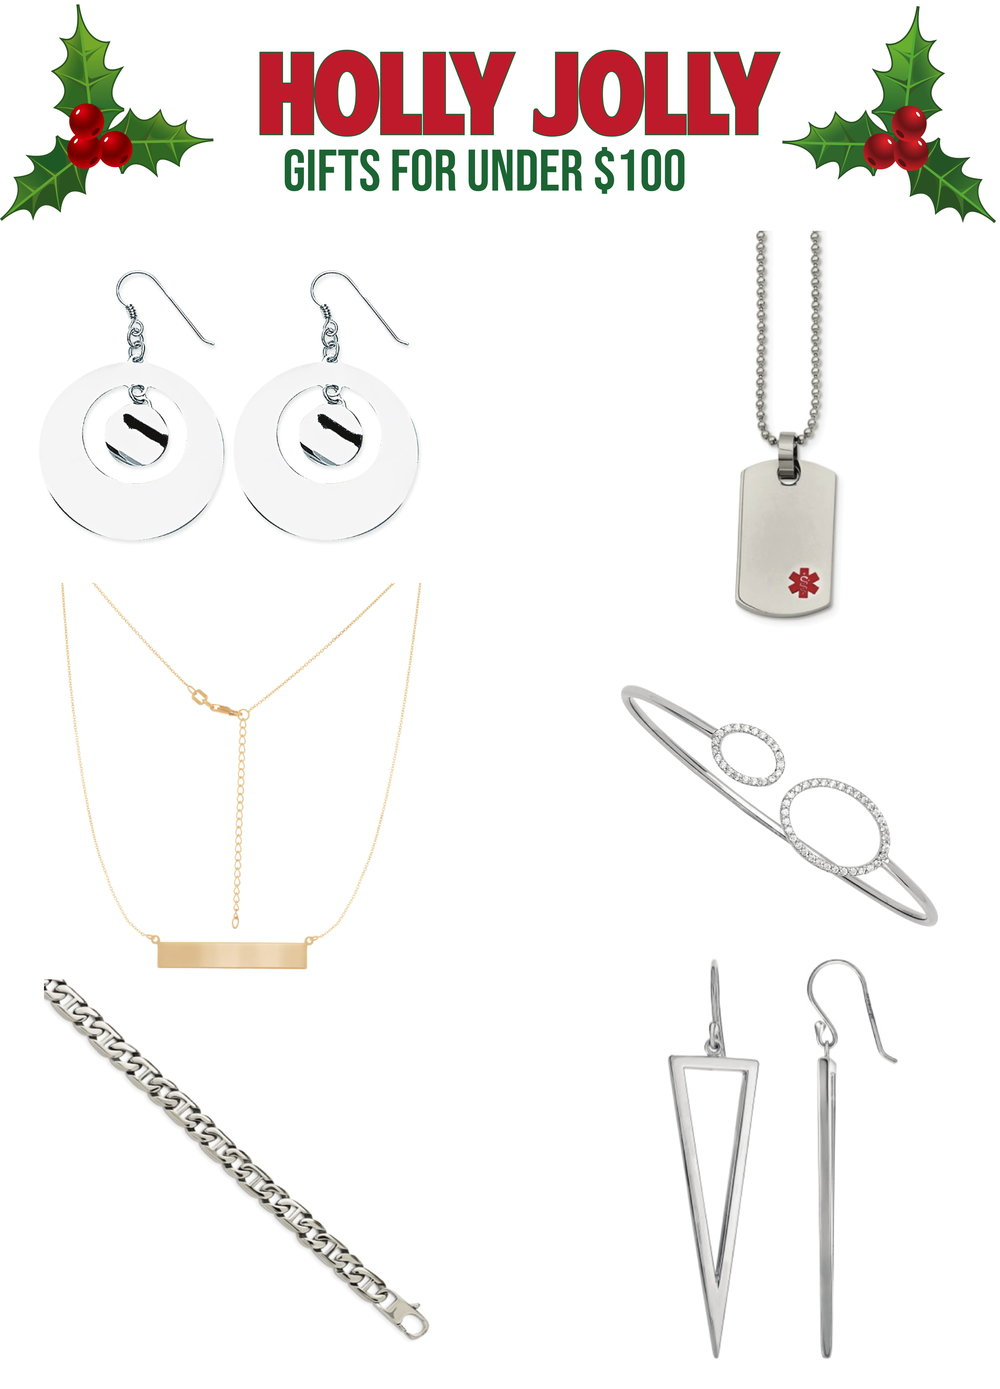 Listed: - 1. Circle Fashion Dangle Shep Hook Earrings2. Small Dog Tag Medical Pendant Necklace3. 18